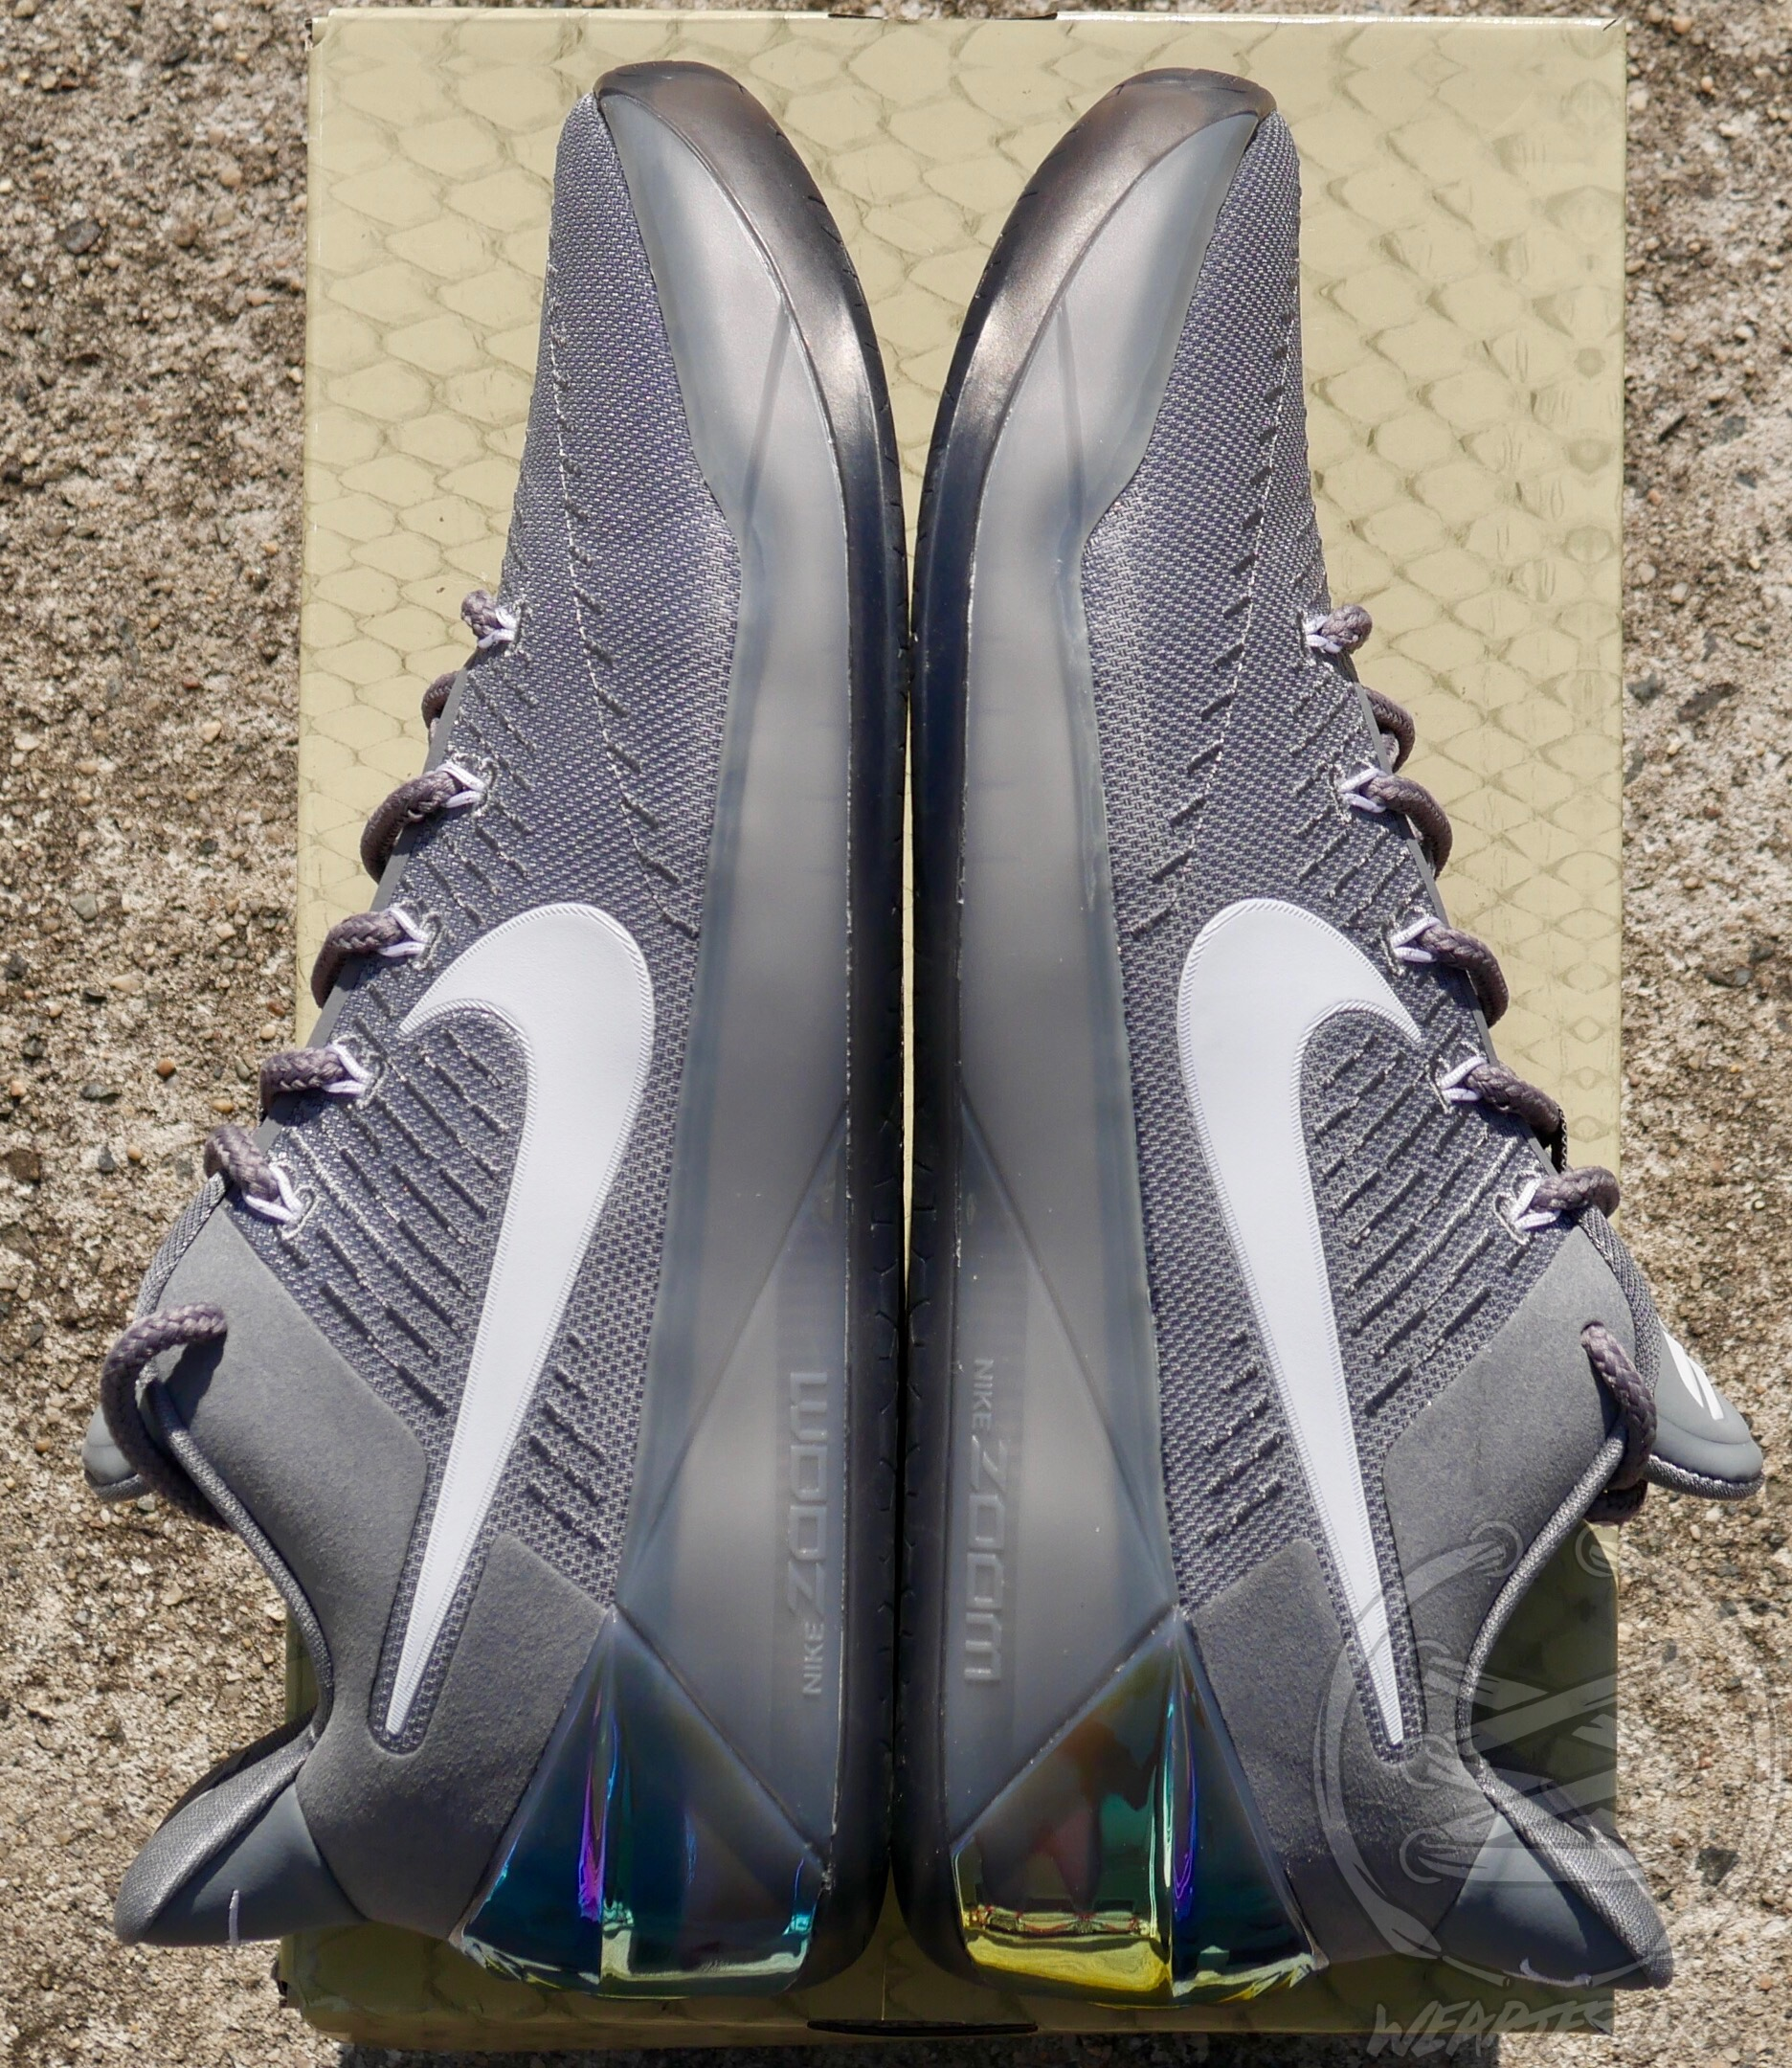 new products 8f1d6 413c9 A Detailed Look at the Upcoming Nike Kobe A.D. 'Cool Grey ...